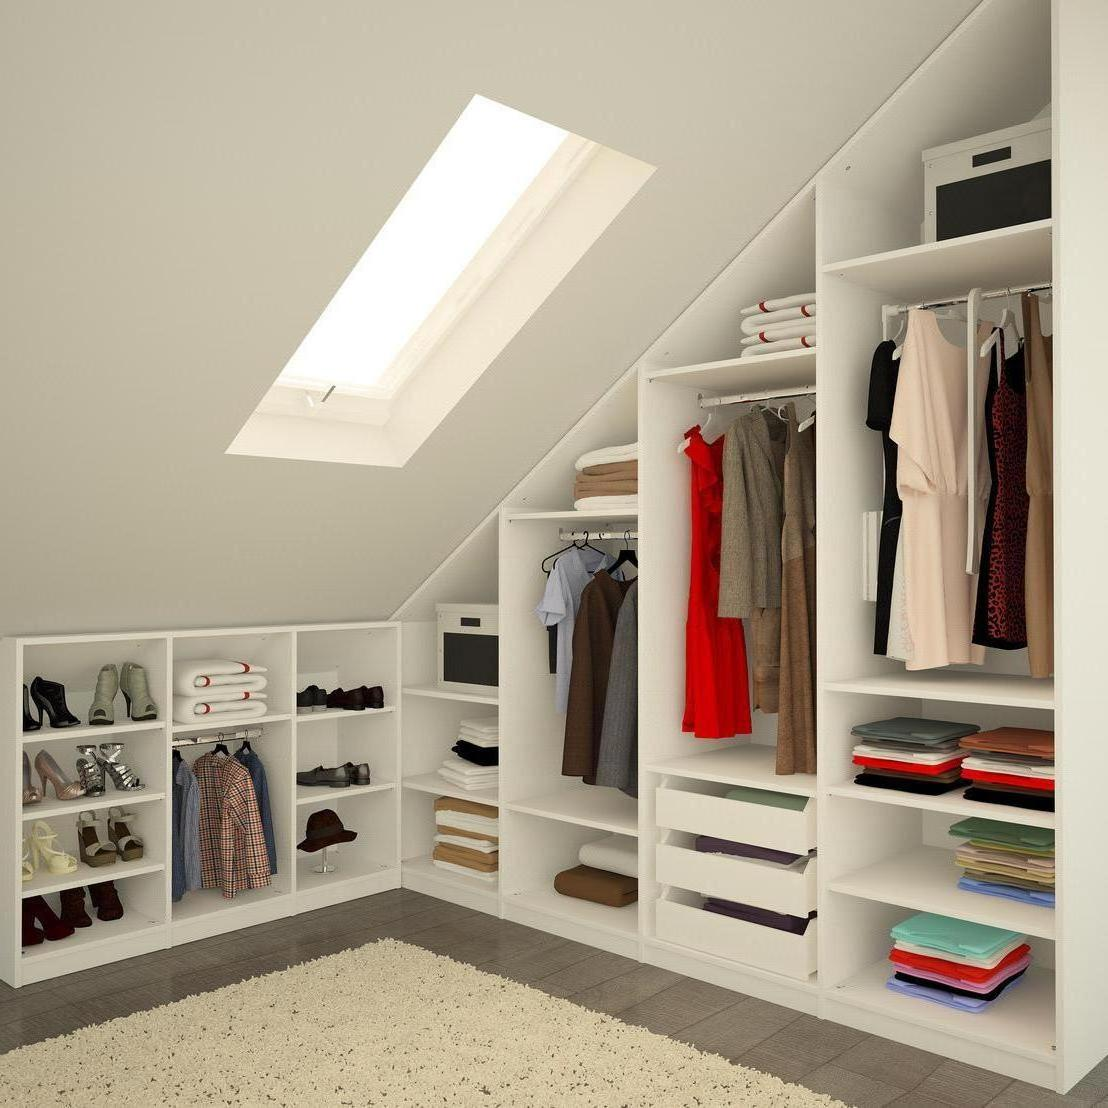 Attic bedroom closet ideas 18 tips to rich harmony for Bedroom in attic ideas